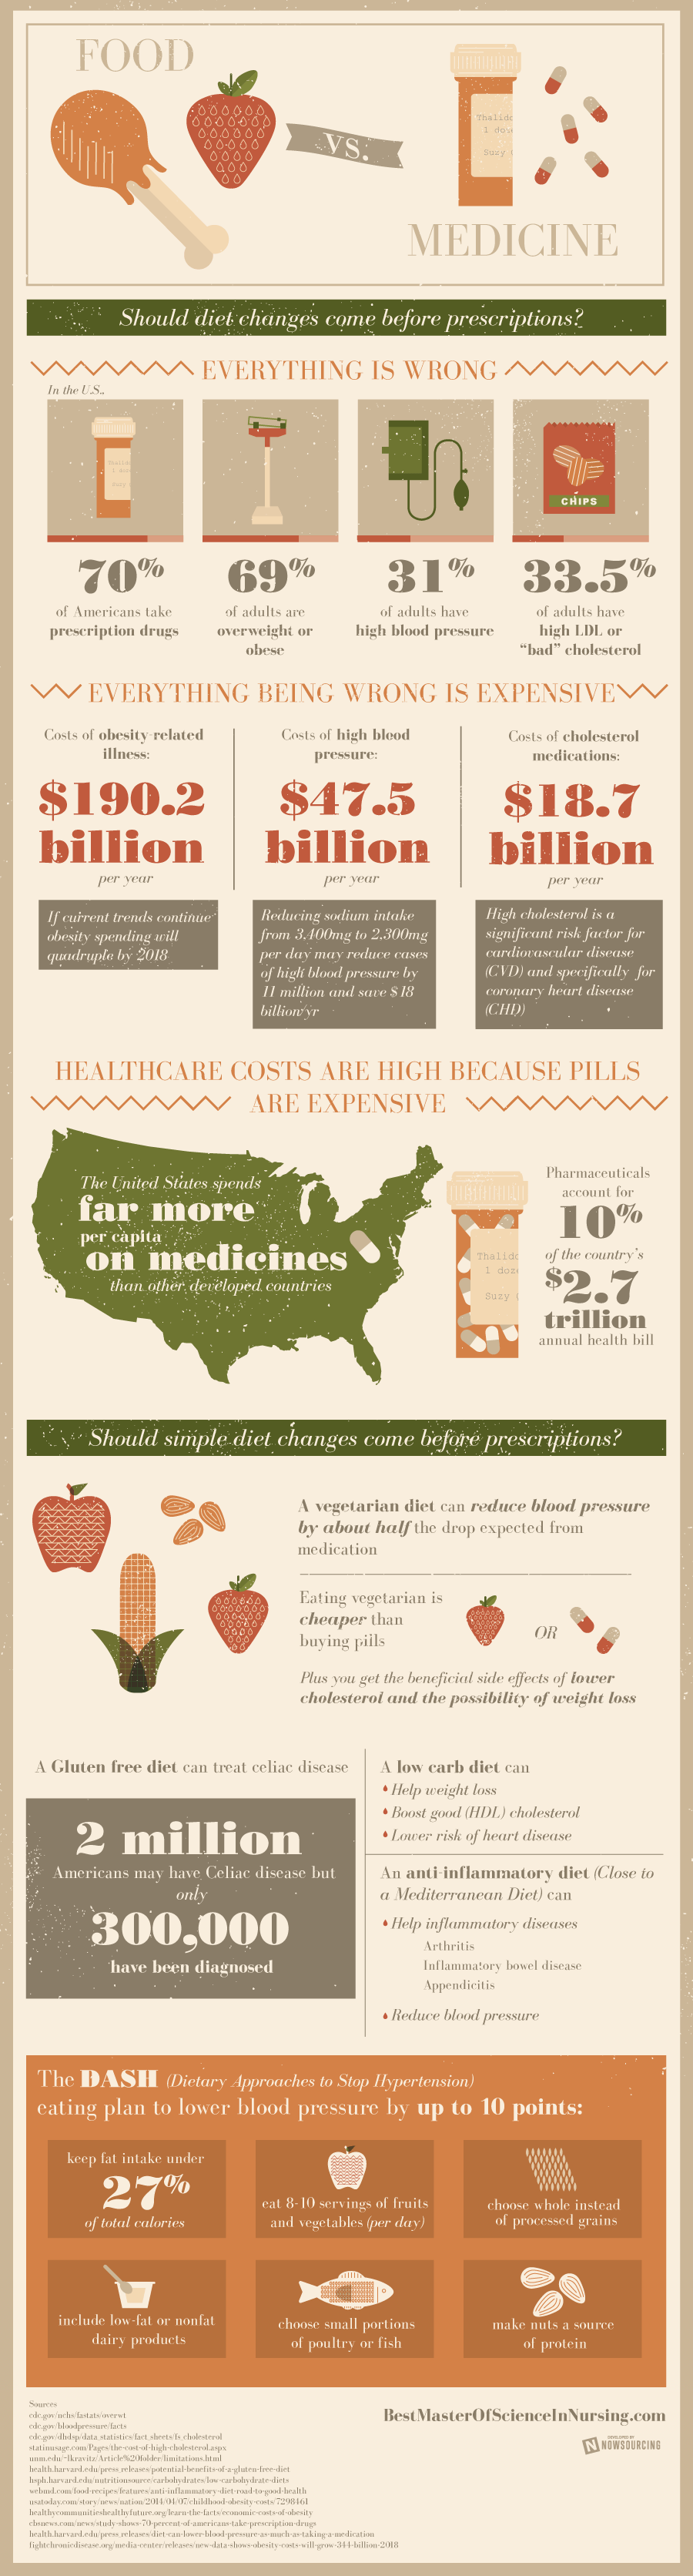 Food vs Pharmaceuticals infographic